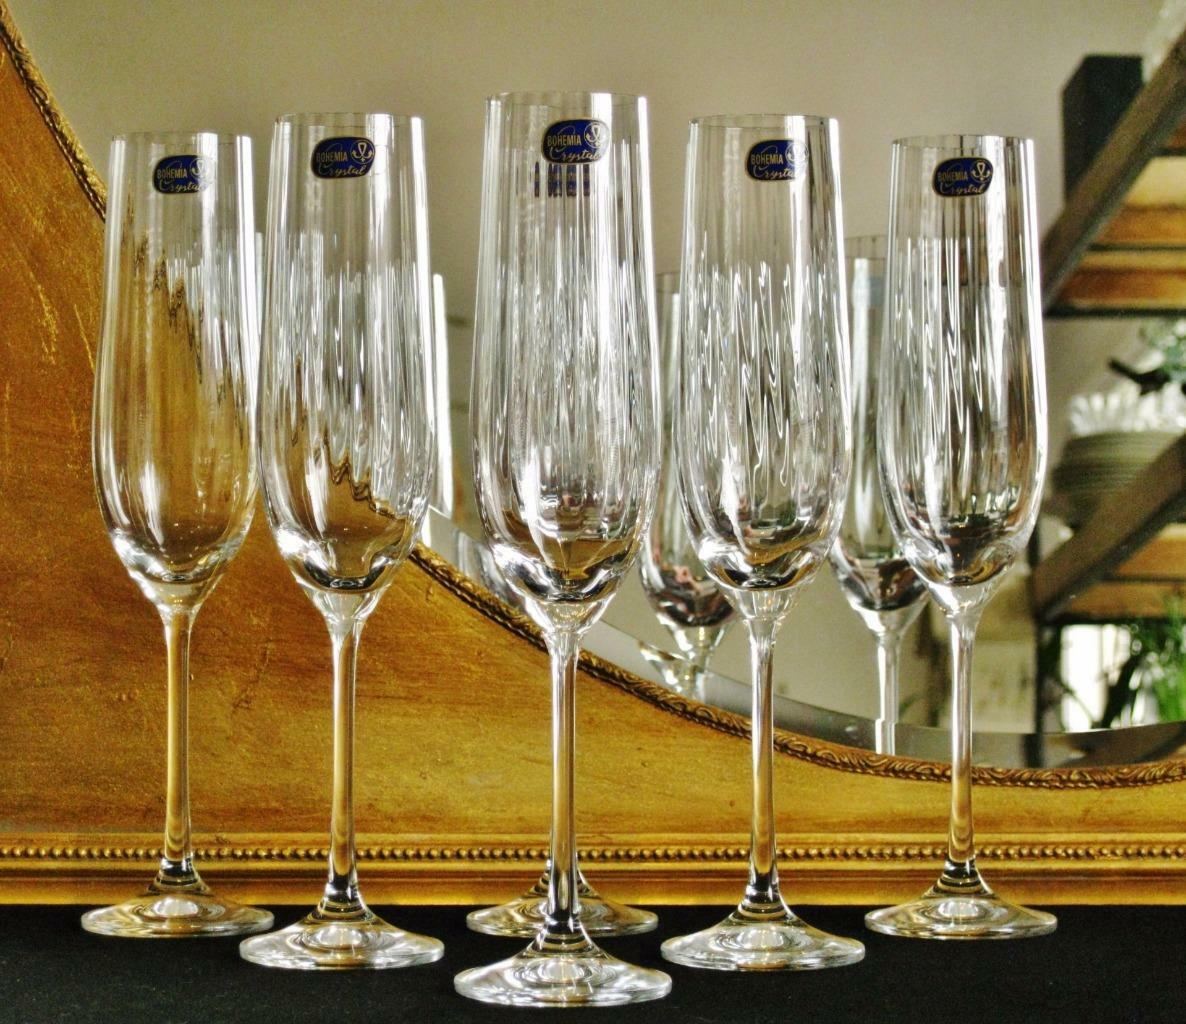 Boxed set of 6 Bohemia Crystal Waterfall Champagne flutes. NEW